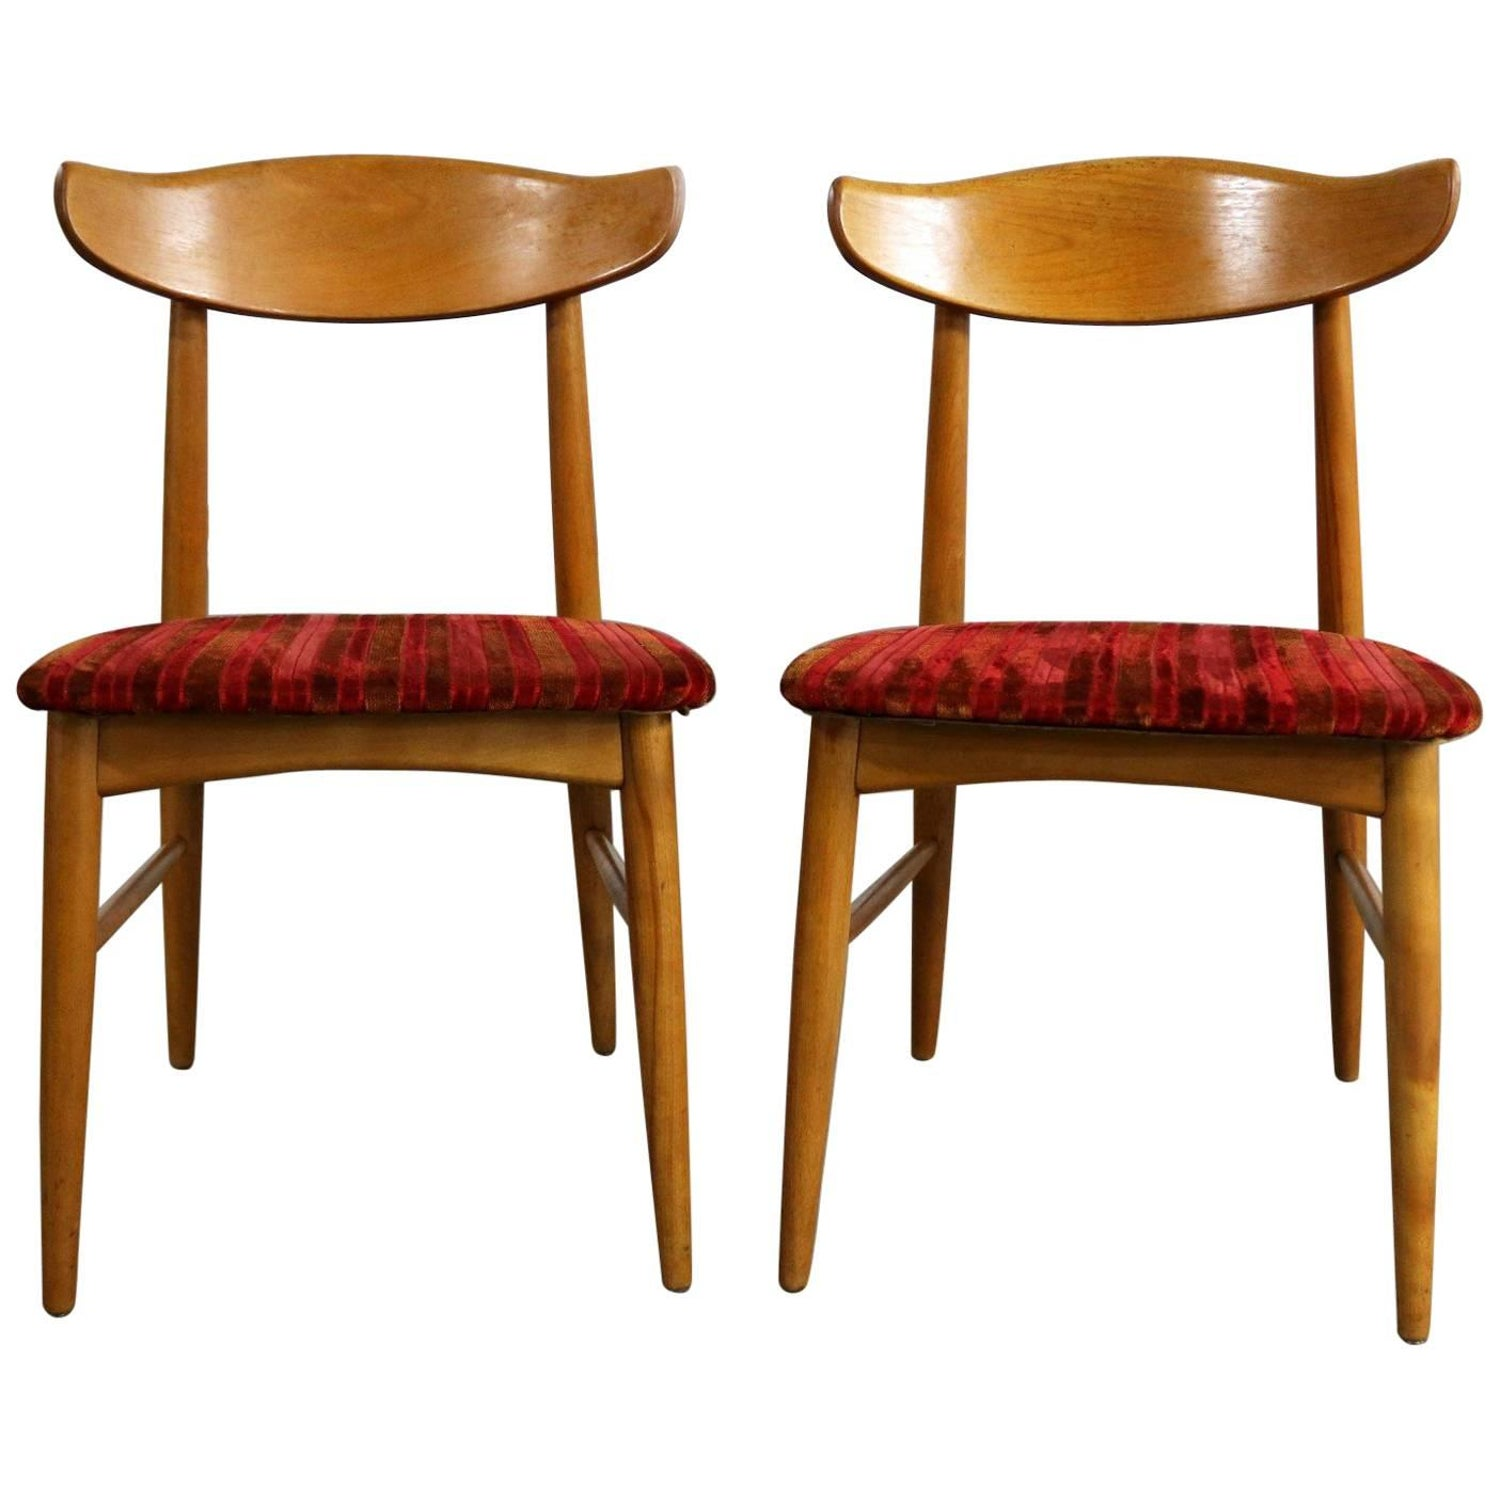 Pair of mid century modern birchcraft danish style side chairs by baumritter for sale at 1stdibs